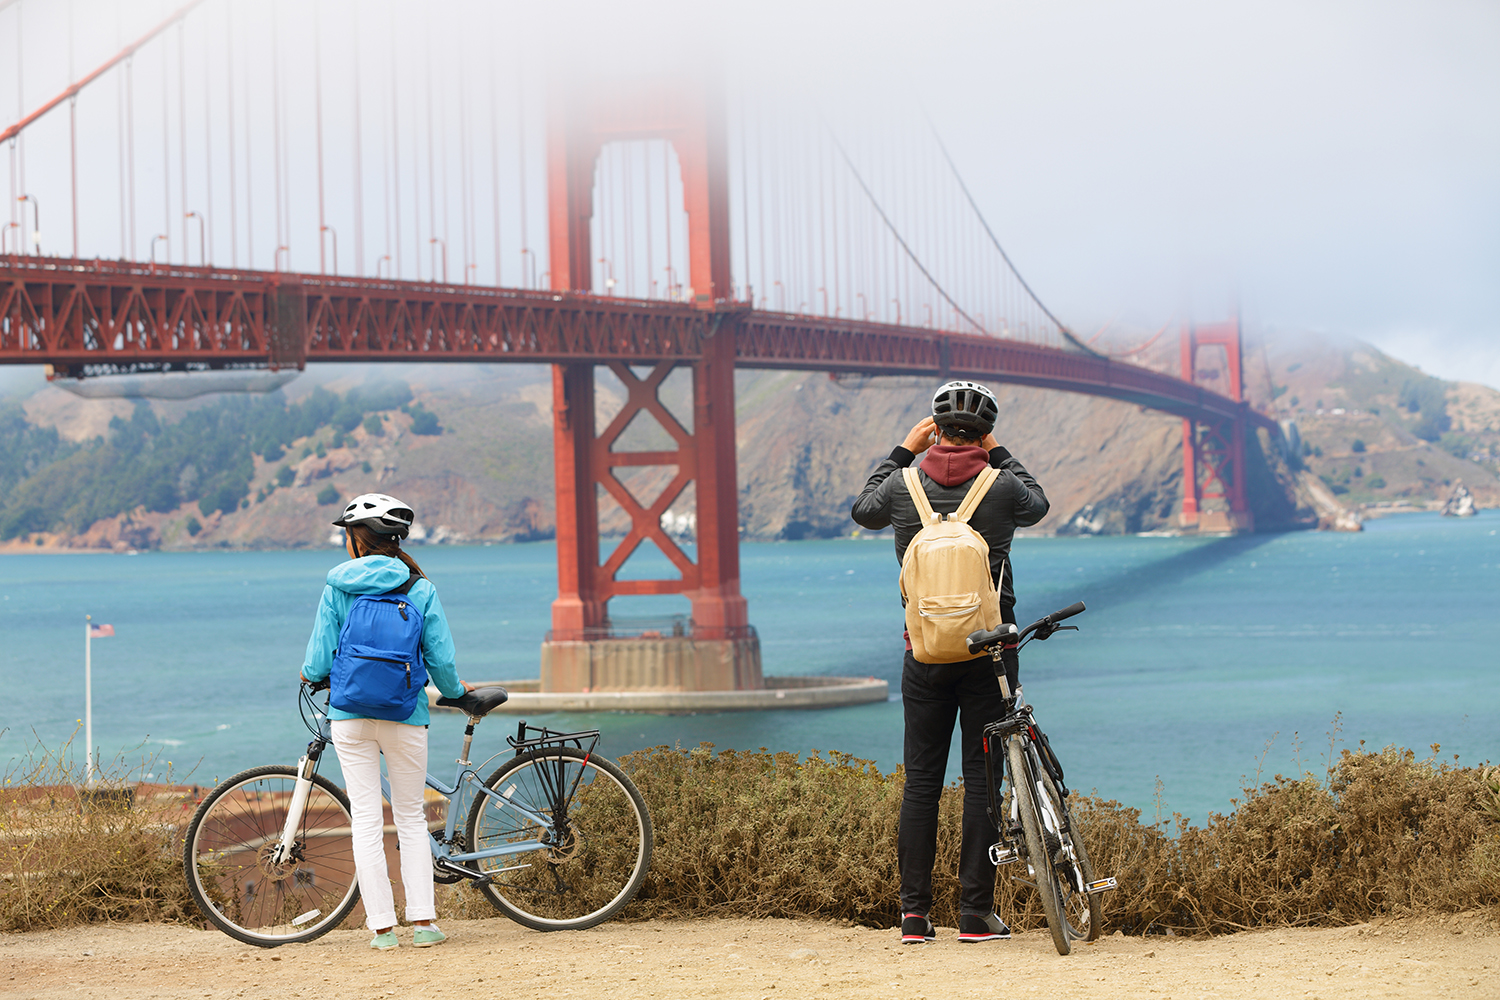 The Best Biking Routes for a Unique San Francisco Experience